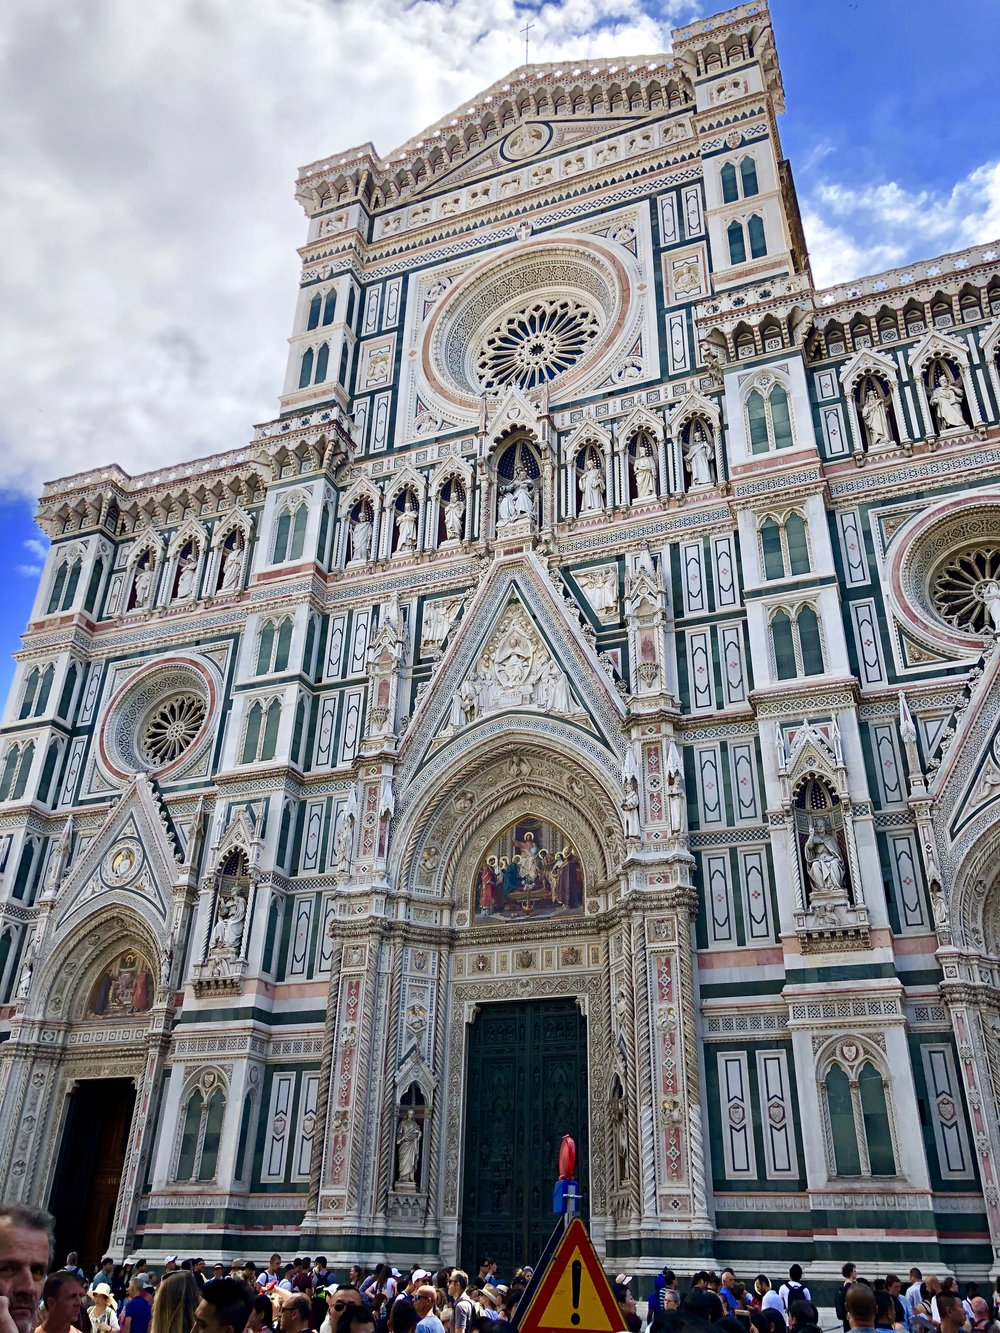 Duomo (Florence, Italy)